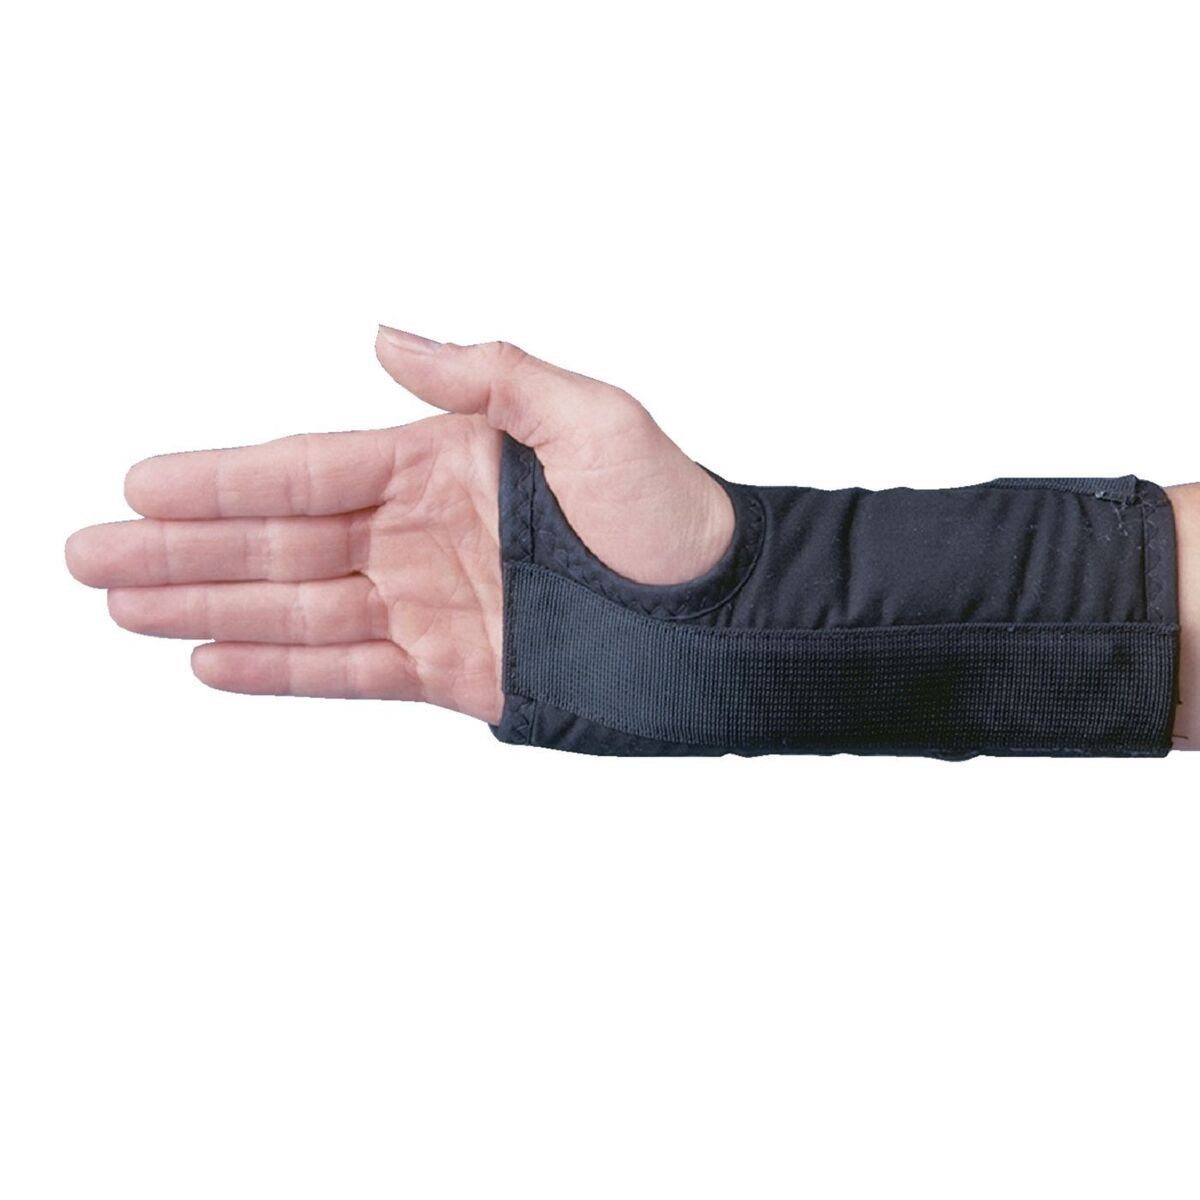 "Rolyan D-Ring Right Wrist Brace, Size Large Fits Wrists 7.75""-8.5"", 7.5"" Regular Length Support"